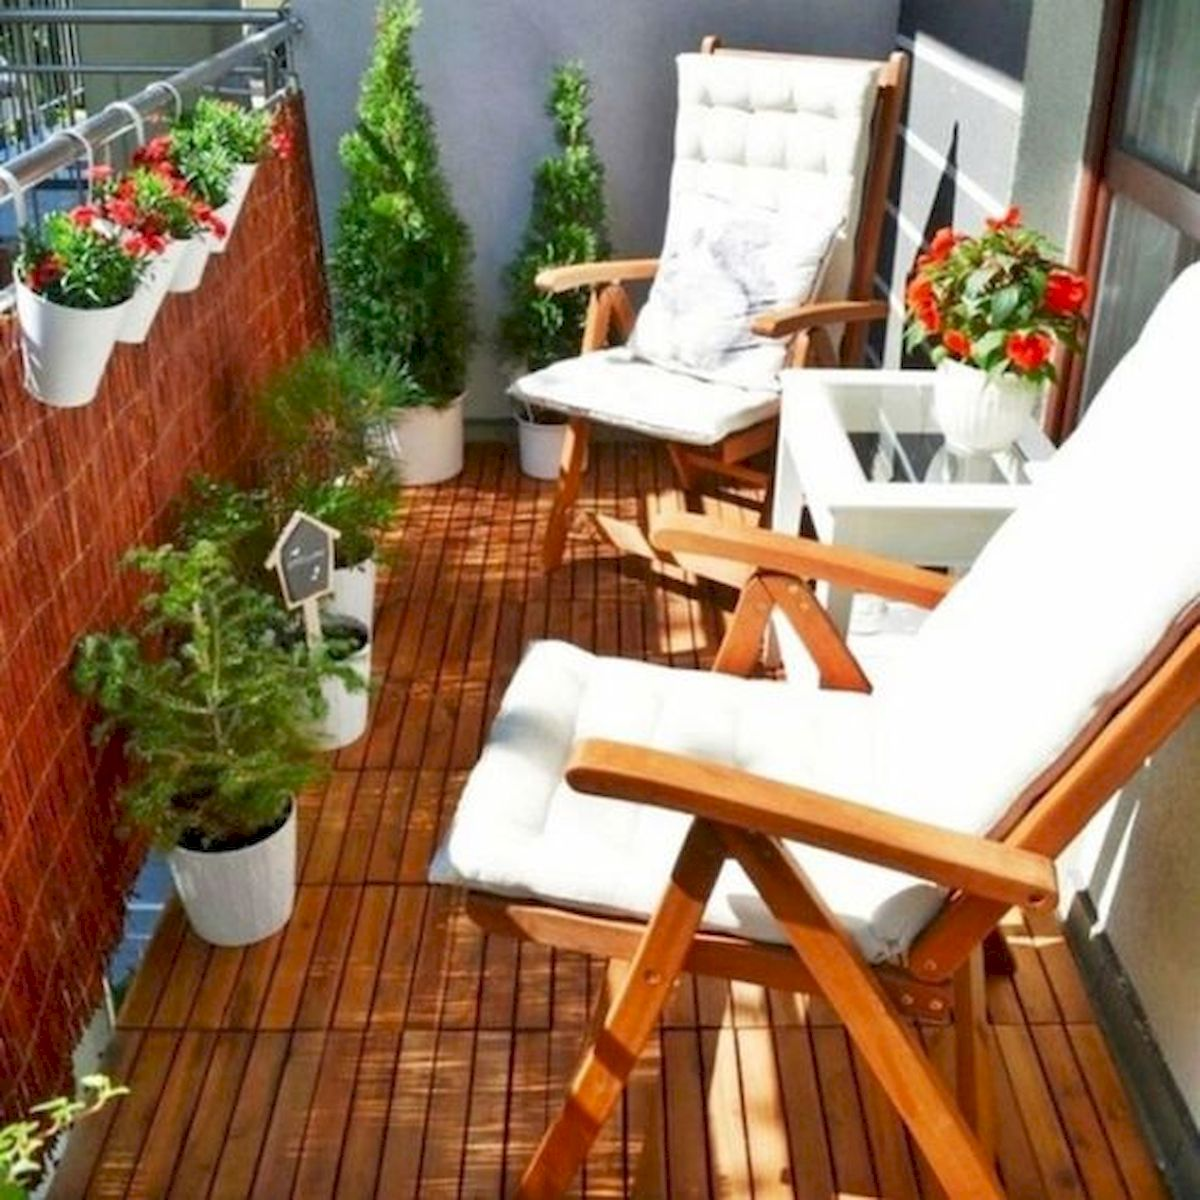 70 Awesome Small Garden Ideas for Apartment (5)